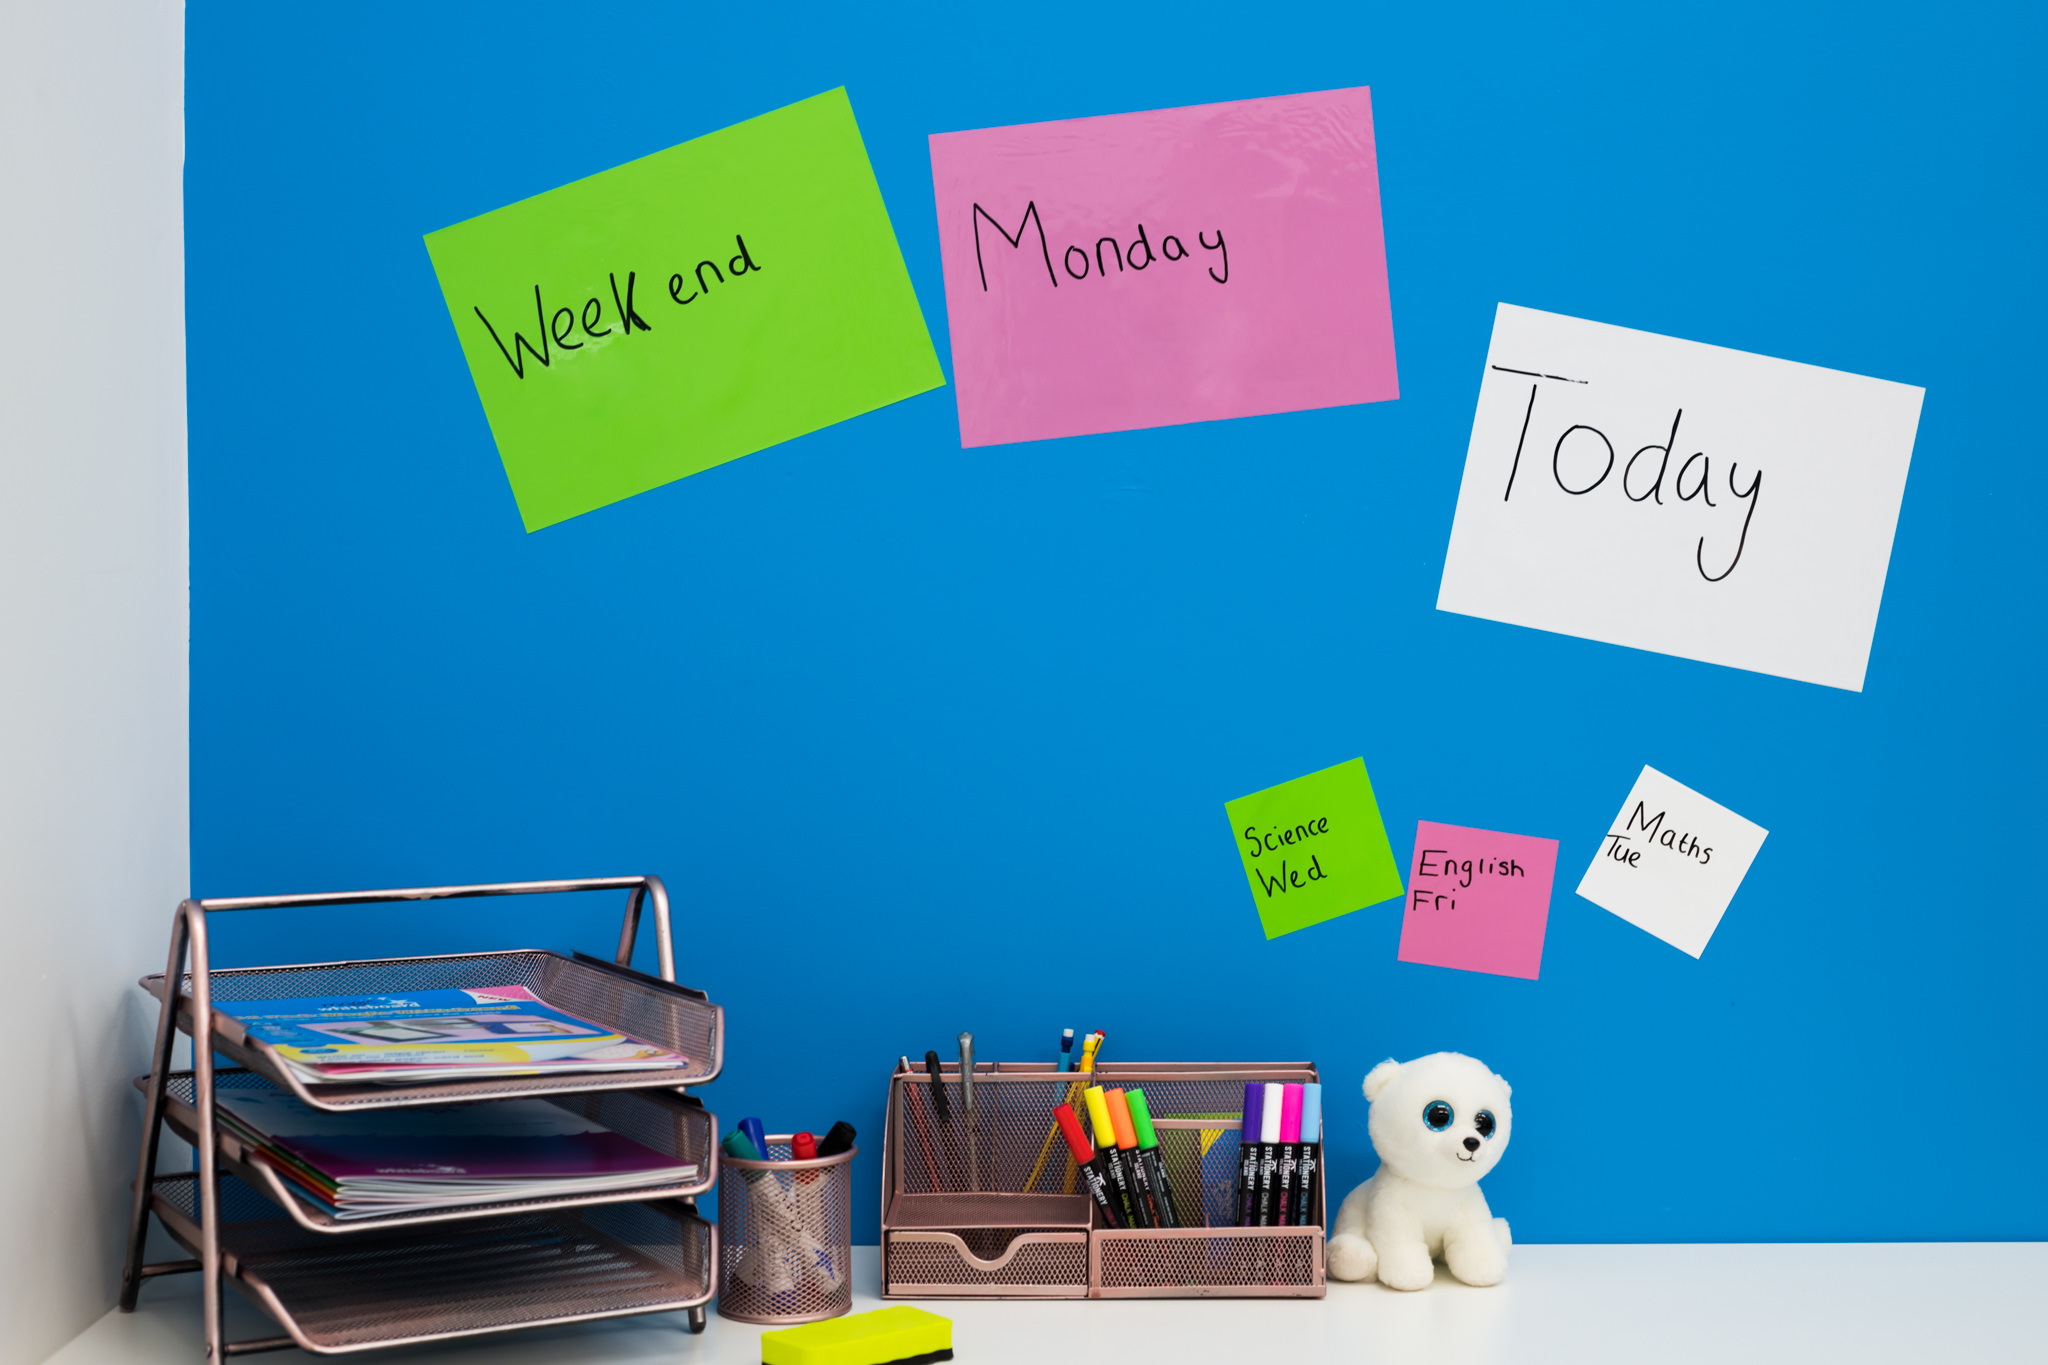 A4 Magic Whiteboard revision stationery